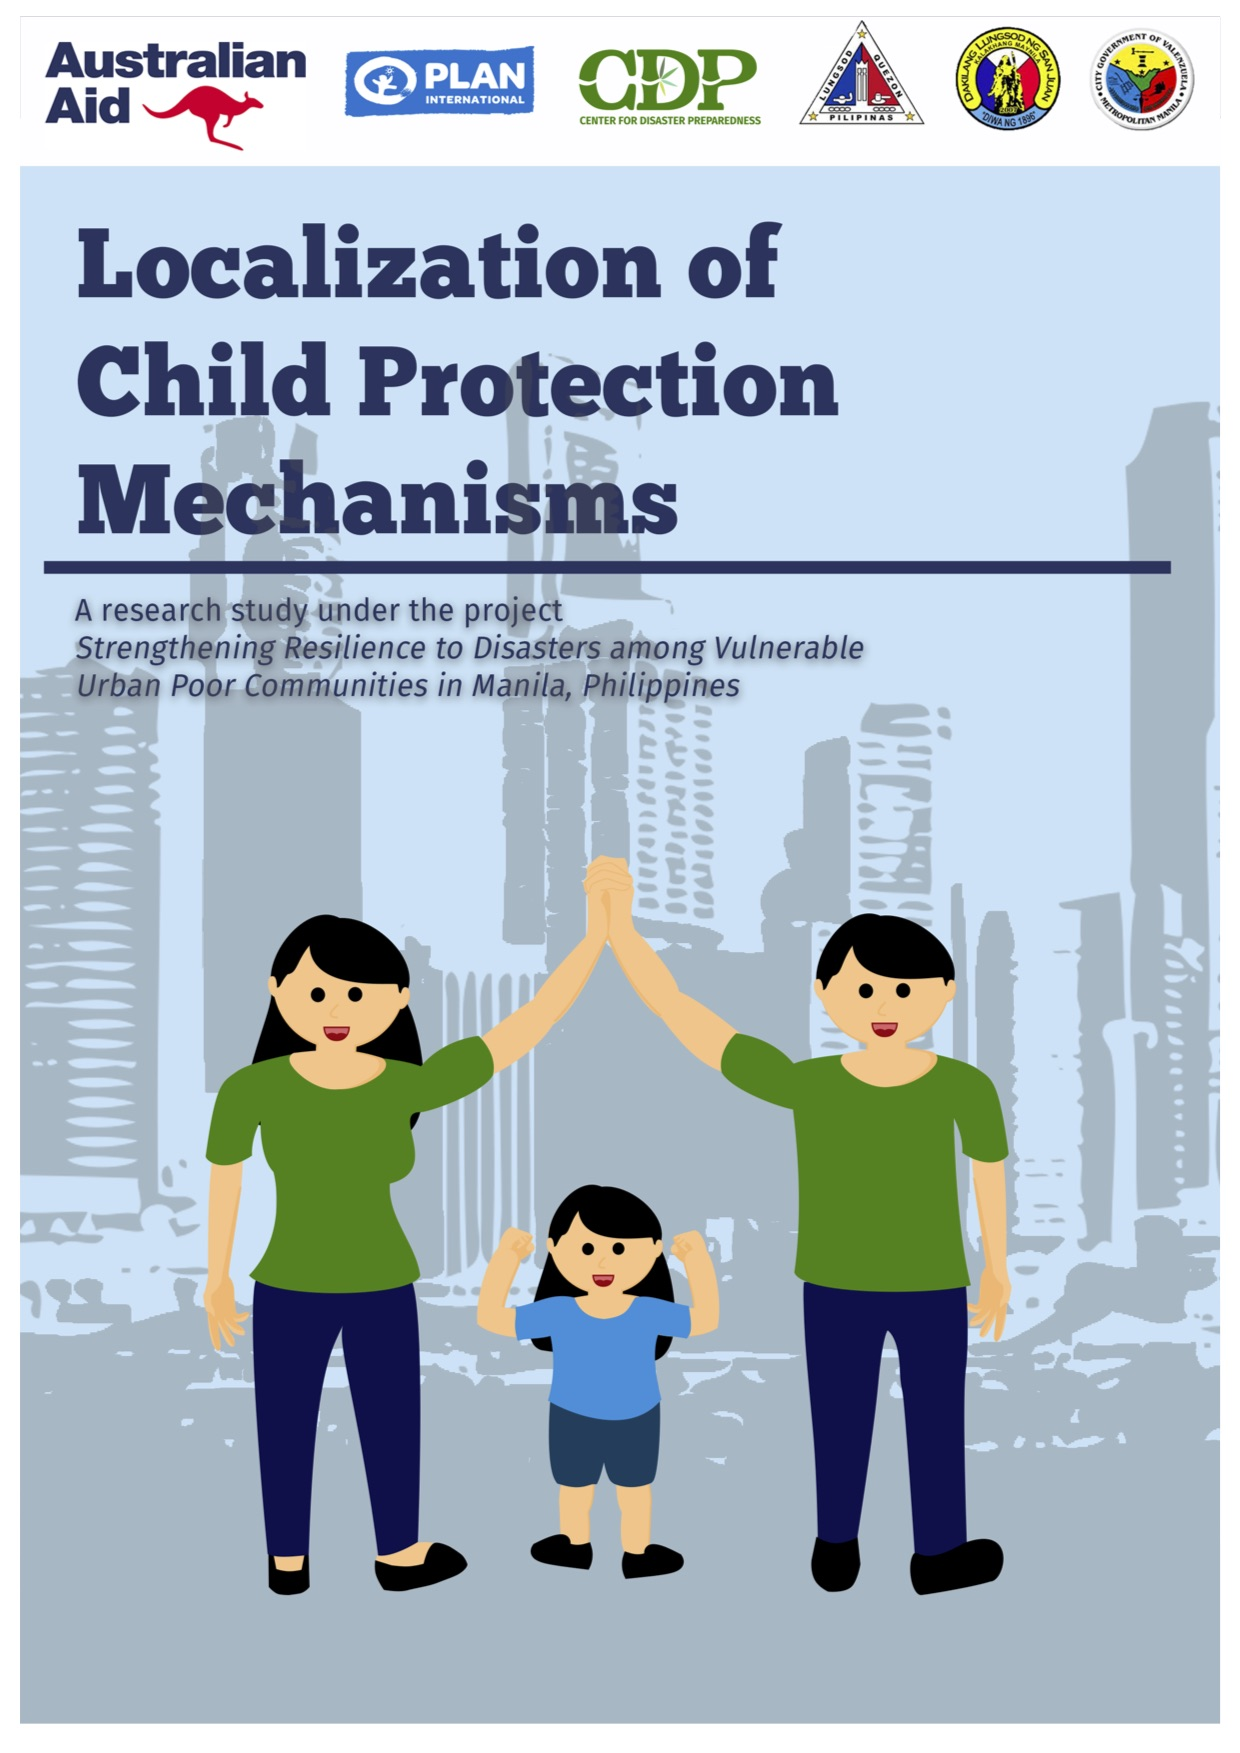 Final Research Report on Localization of Child Protection Mechanisms